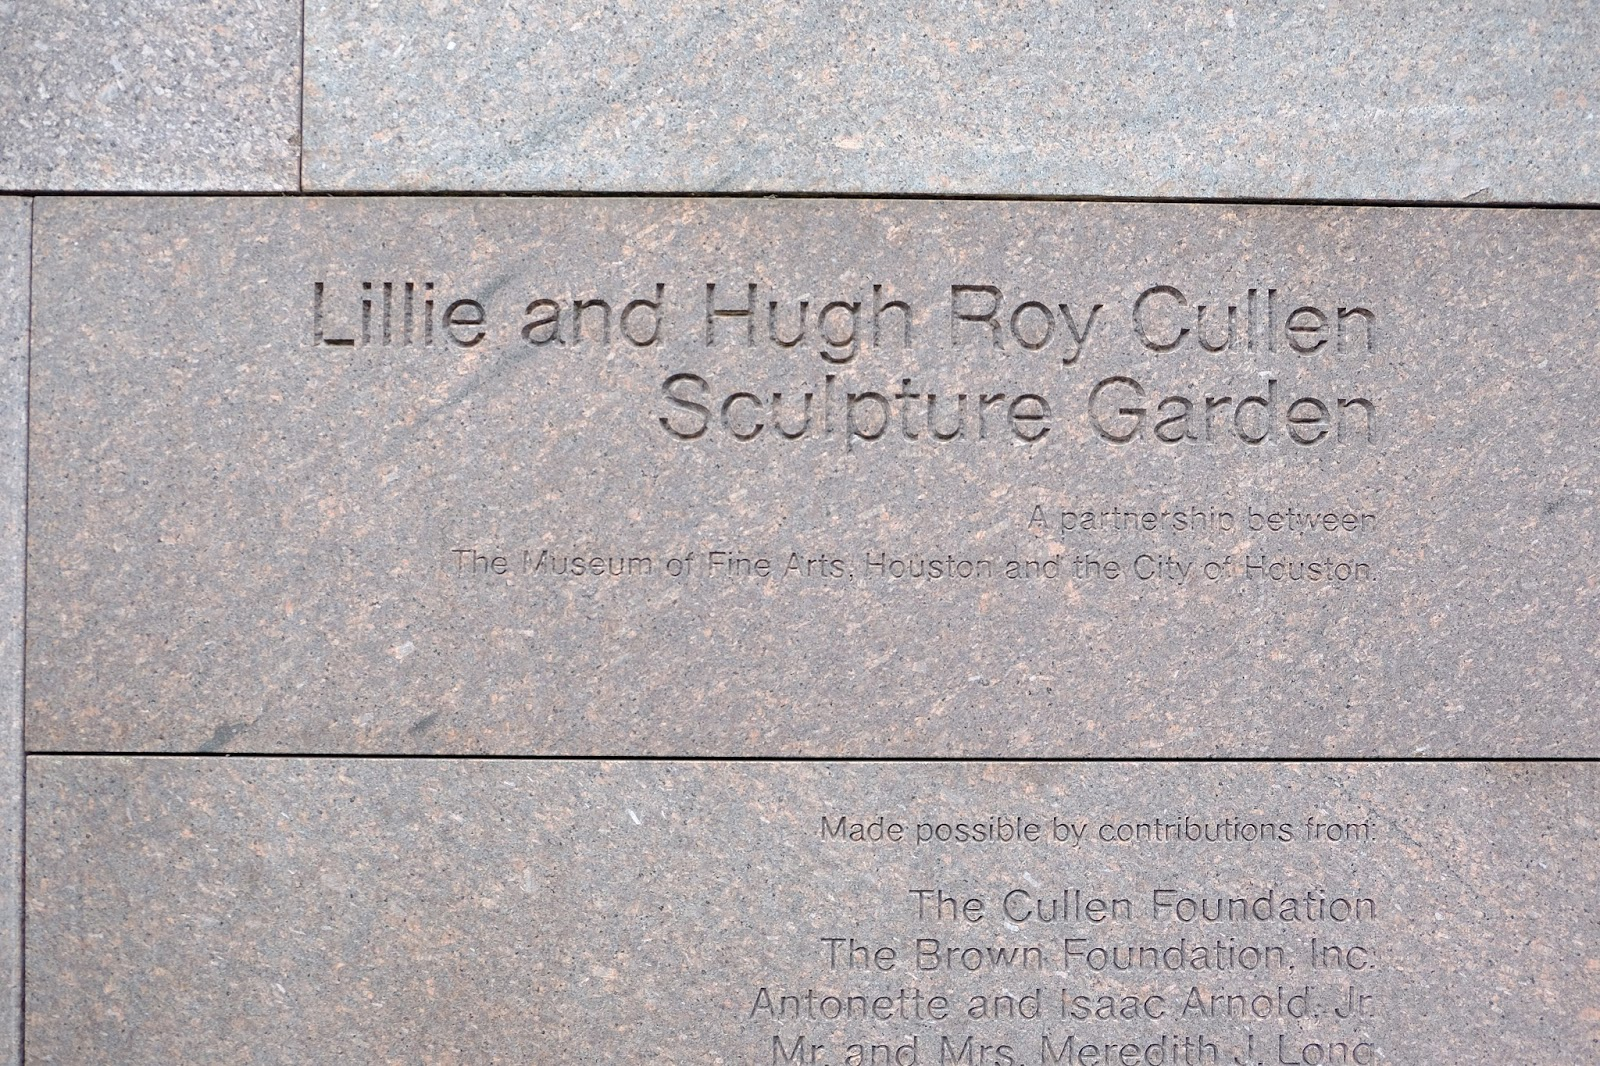 Red bread tie houston lillie and hugh roy cullen - Lillie and hugh roy cullen sculpture garden ...